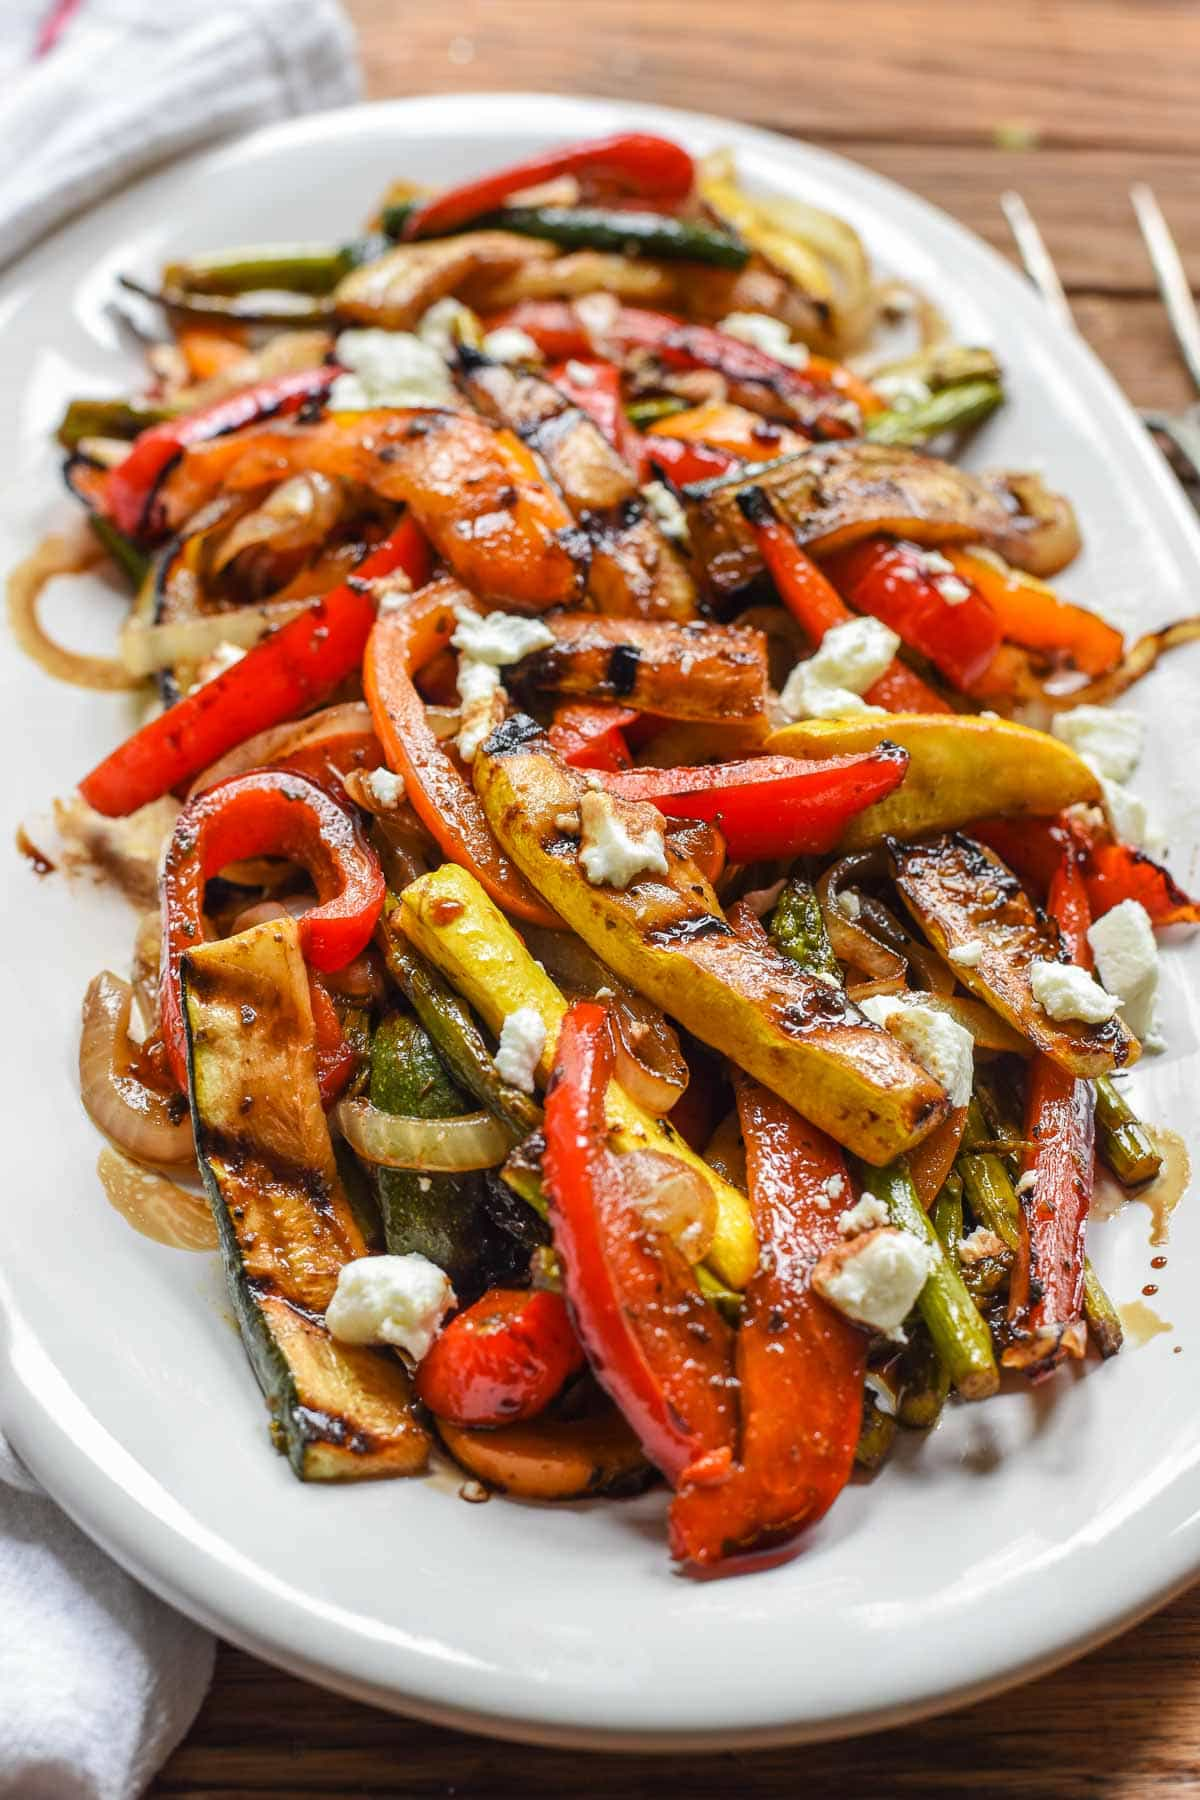 These Easy Balsamic Grilled Vegetables are a super flavorful, no mess side dish for summer!